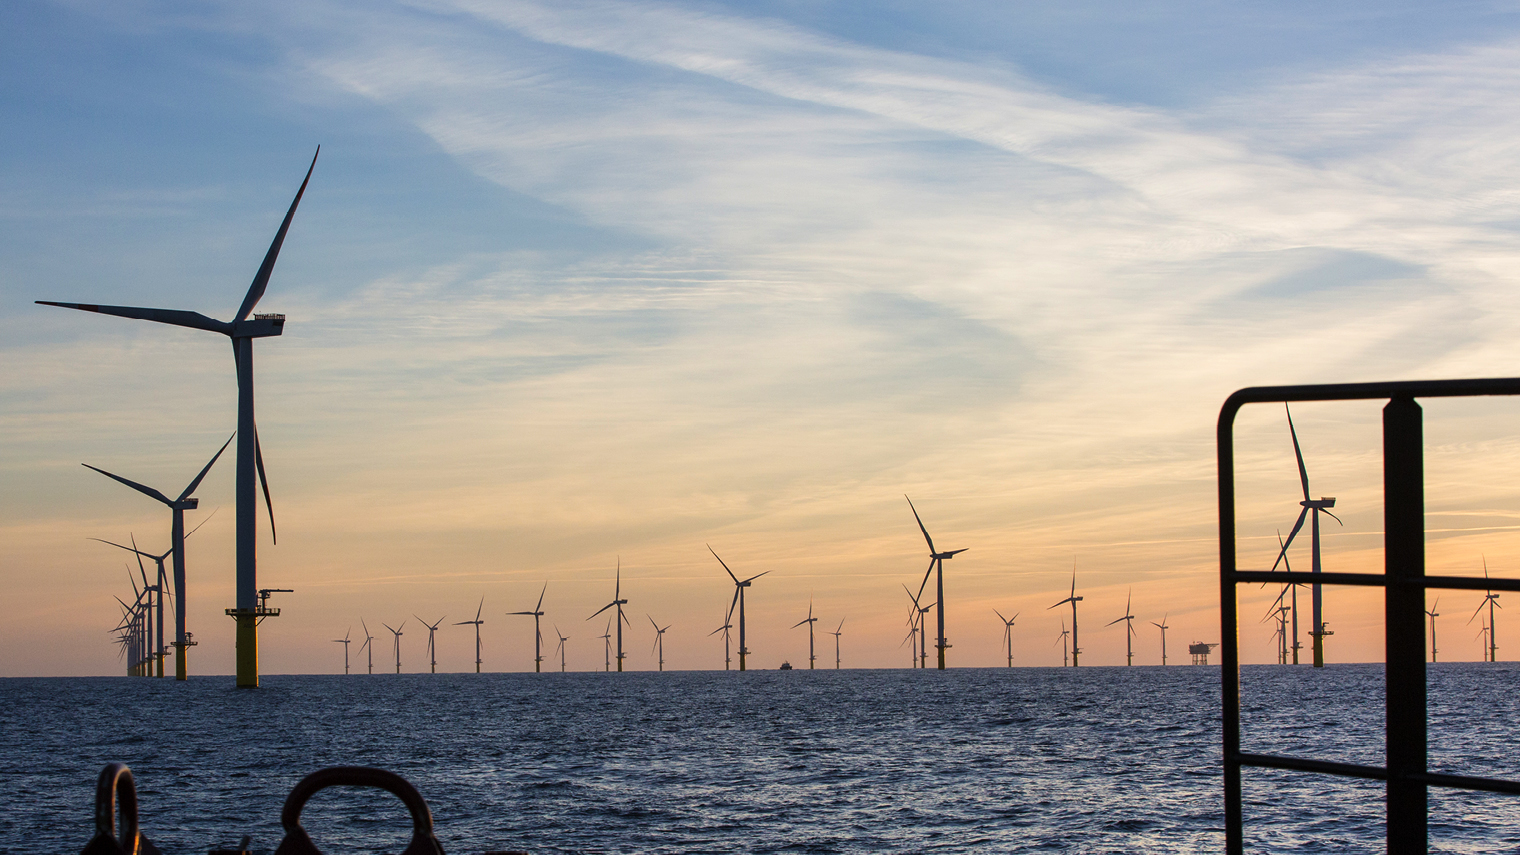 Offshore wind farms have boomed under UK government planning support and subsidies